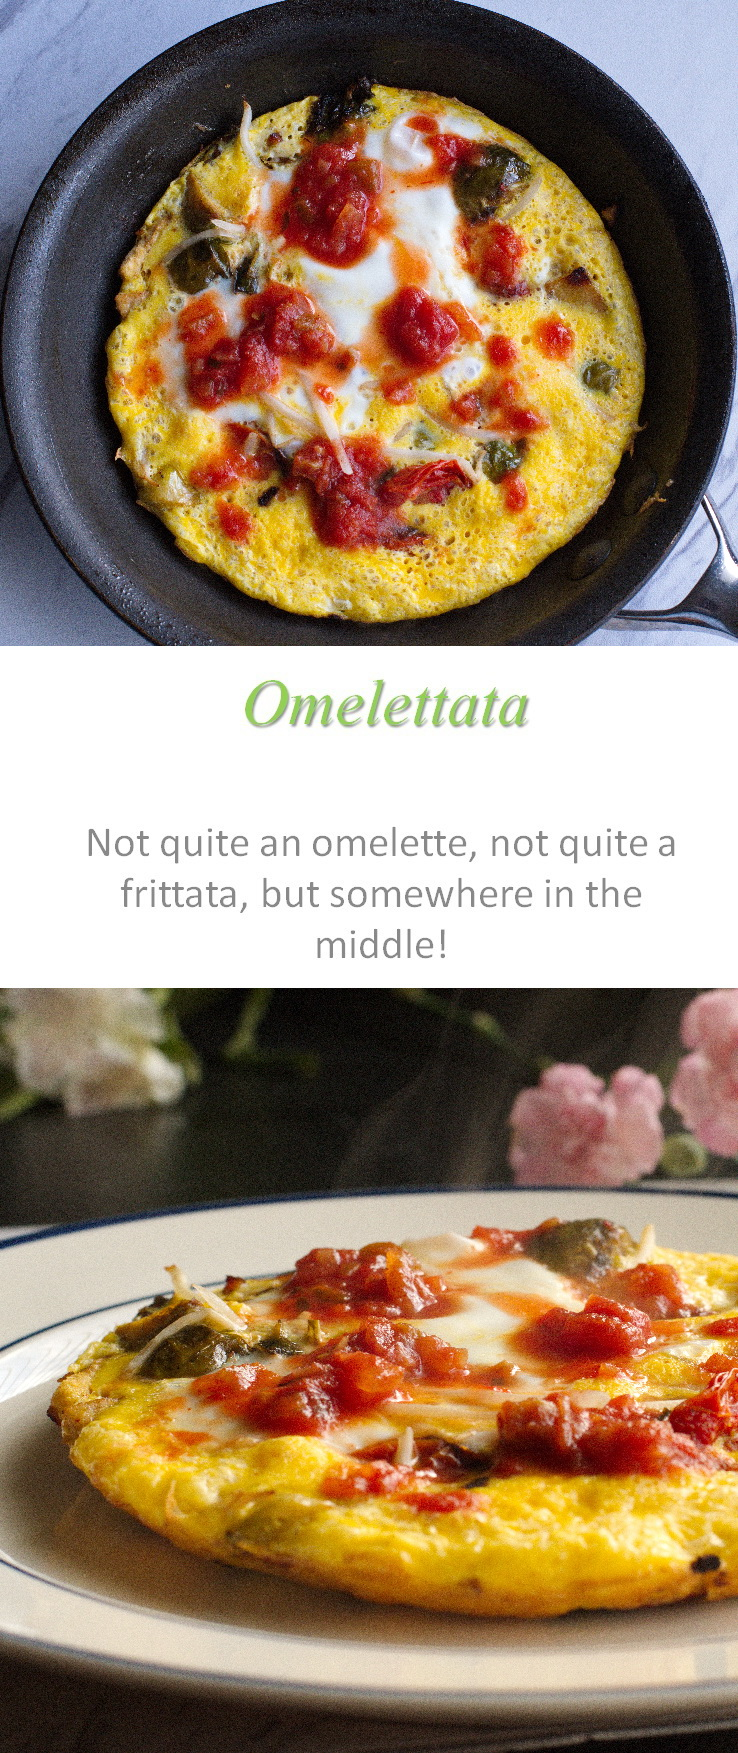 Somewhere between an omelette and a frittata, this omelettata is a tasty middle-ground, chock full of yummy veggies! #omelettata